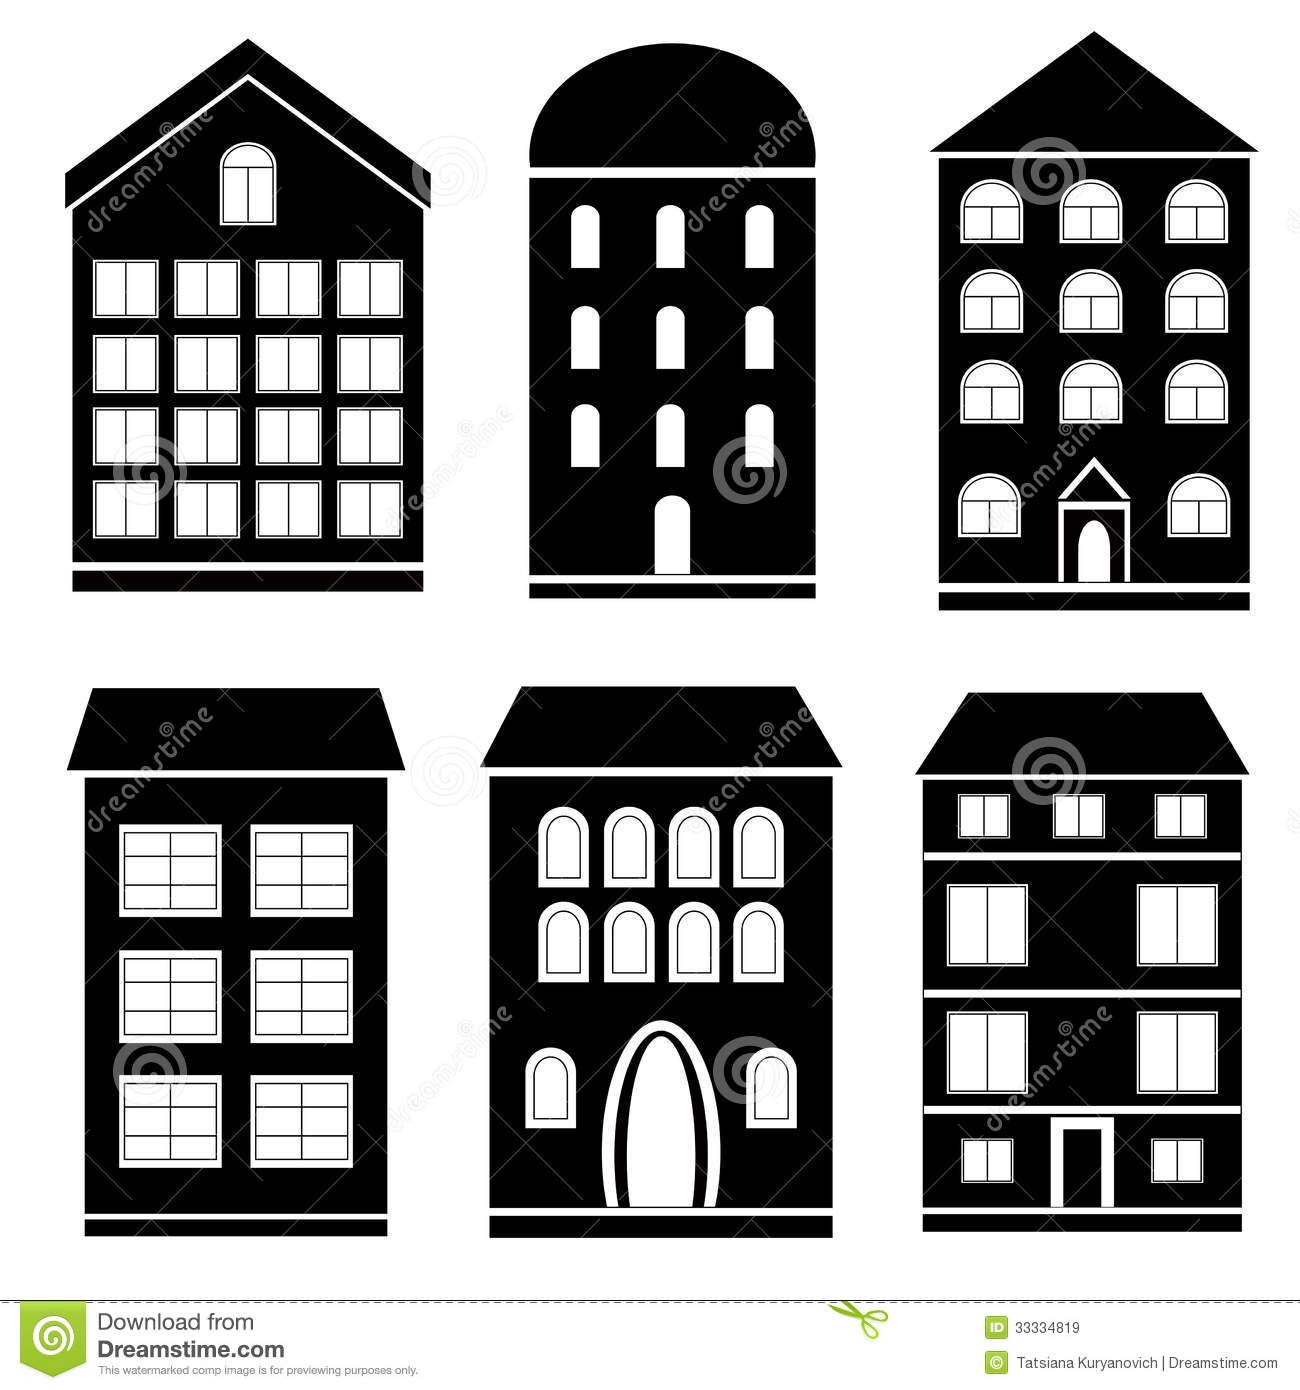 Building cliparts png royalty free Building Clipart Black And White & Building Black And White Clip ... png royalty free